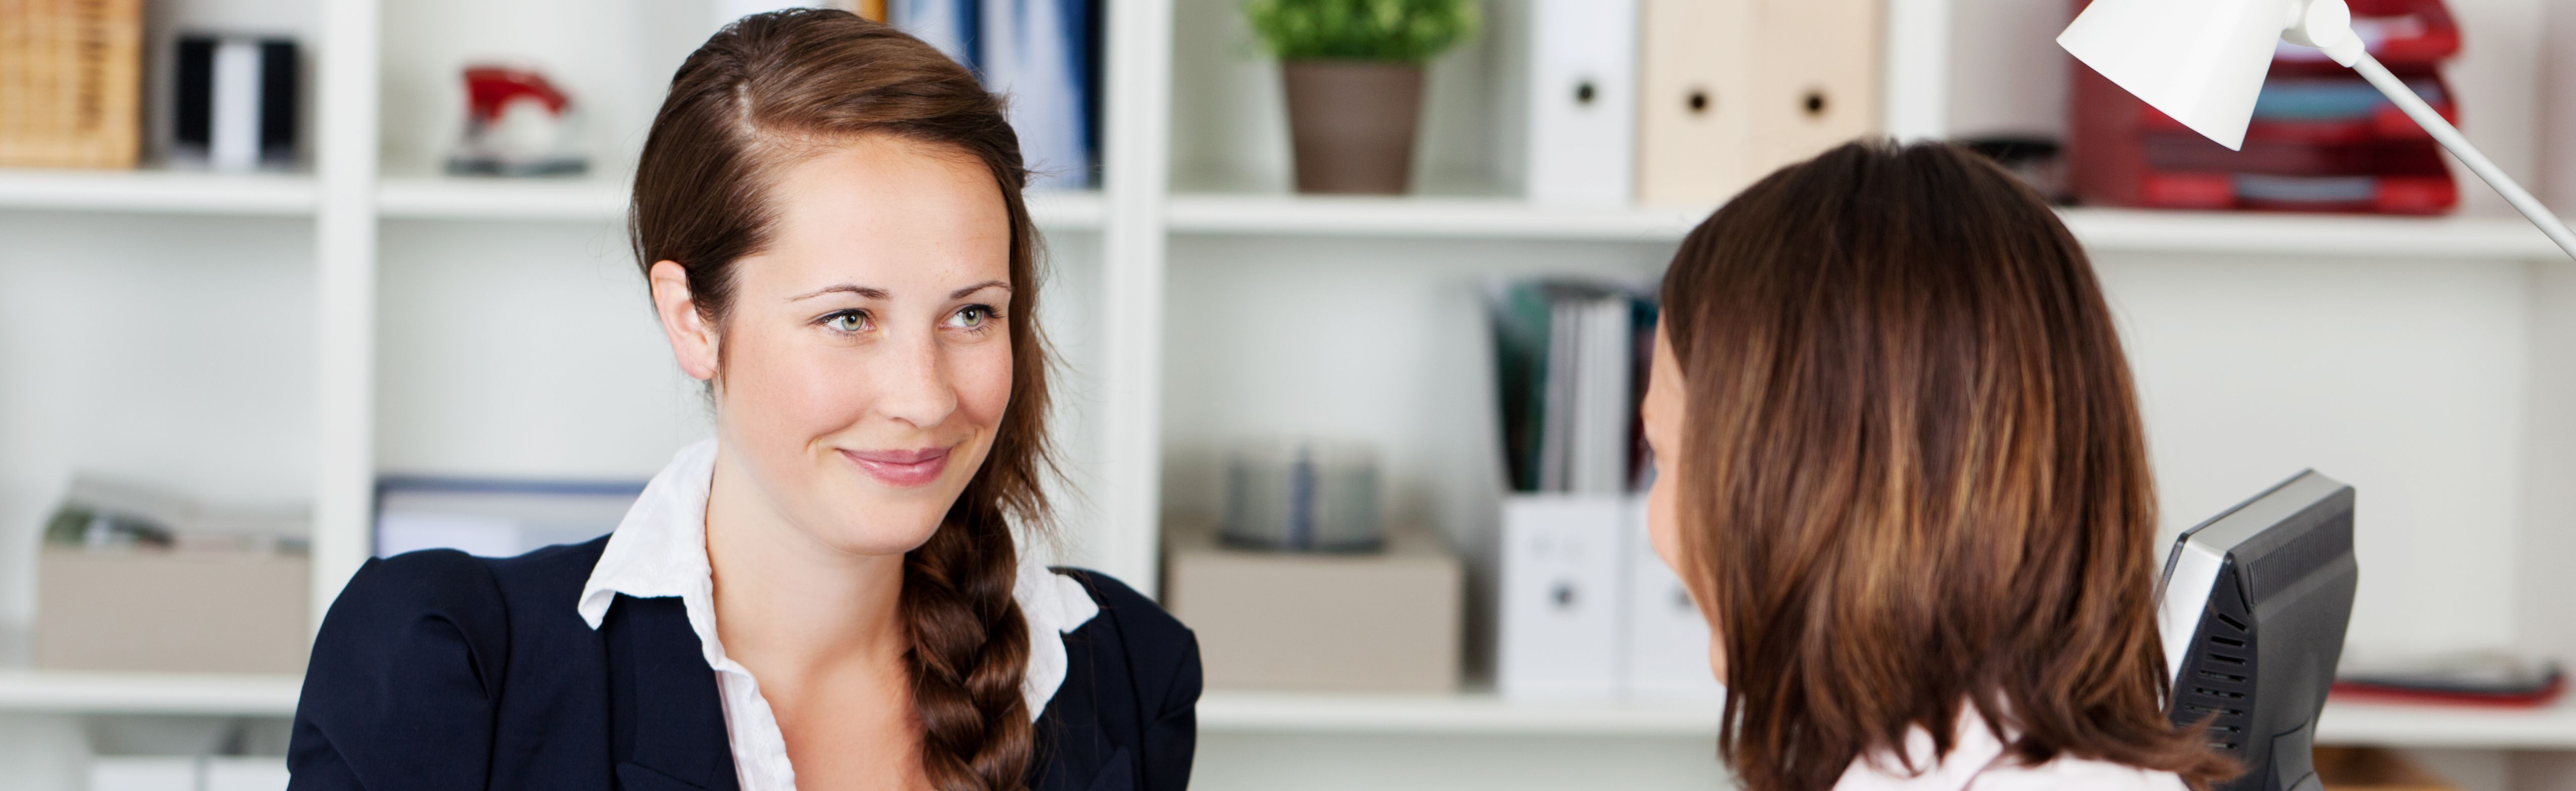 woman-interviewing-another-woman-2.jpg